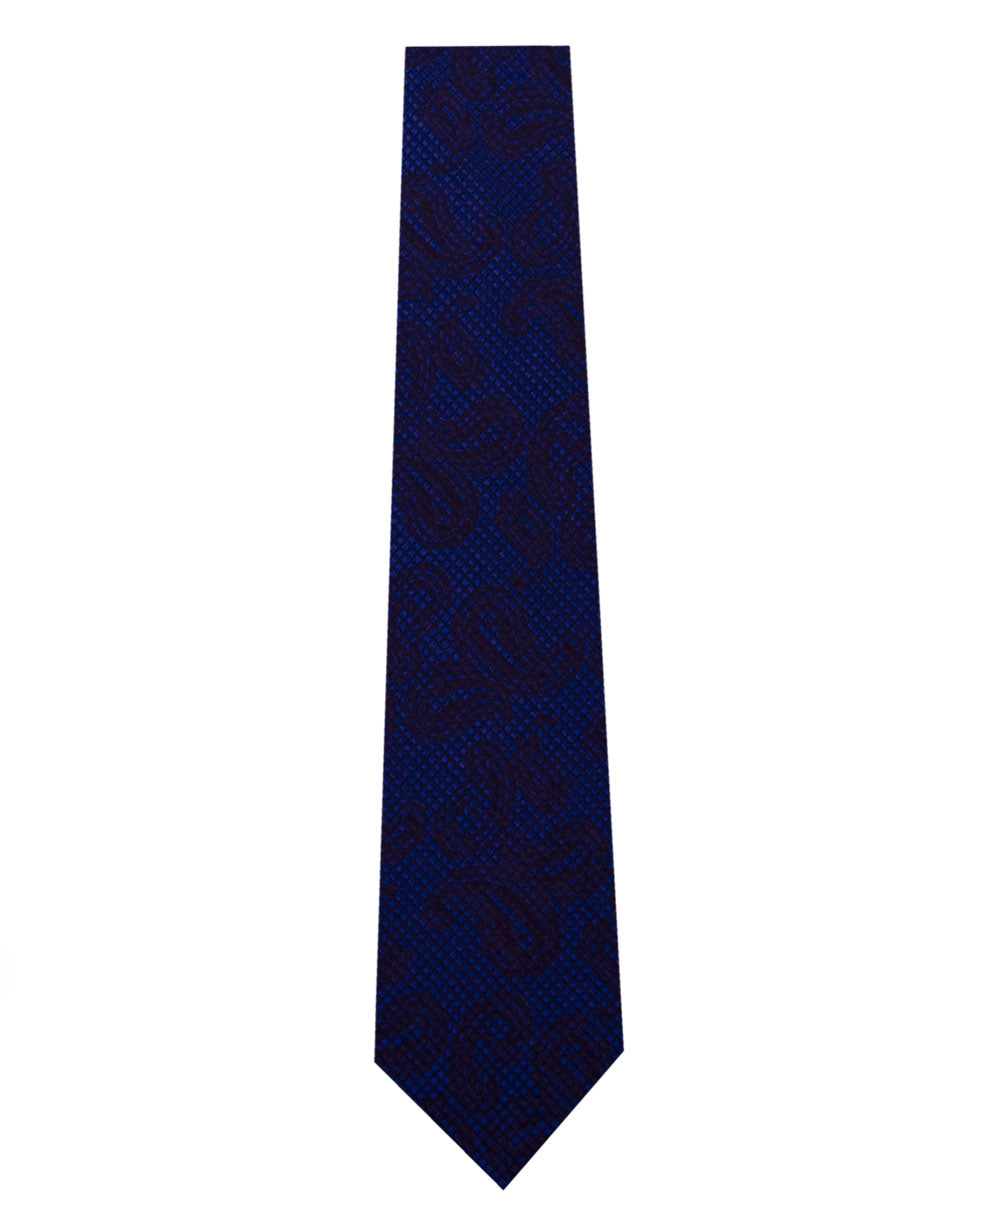 Blue with Black Paisley Pattern Silk Tie Long